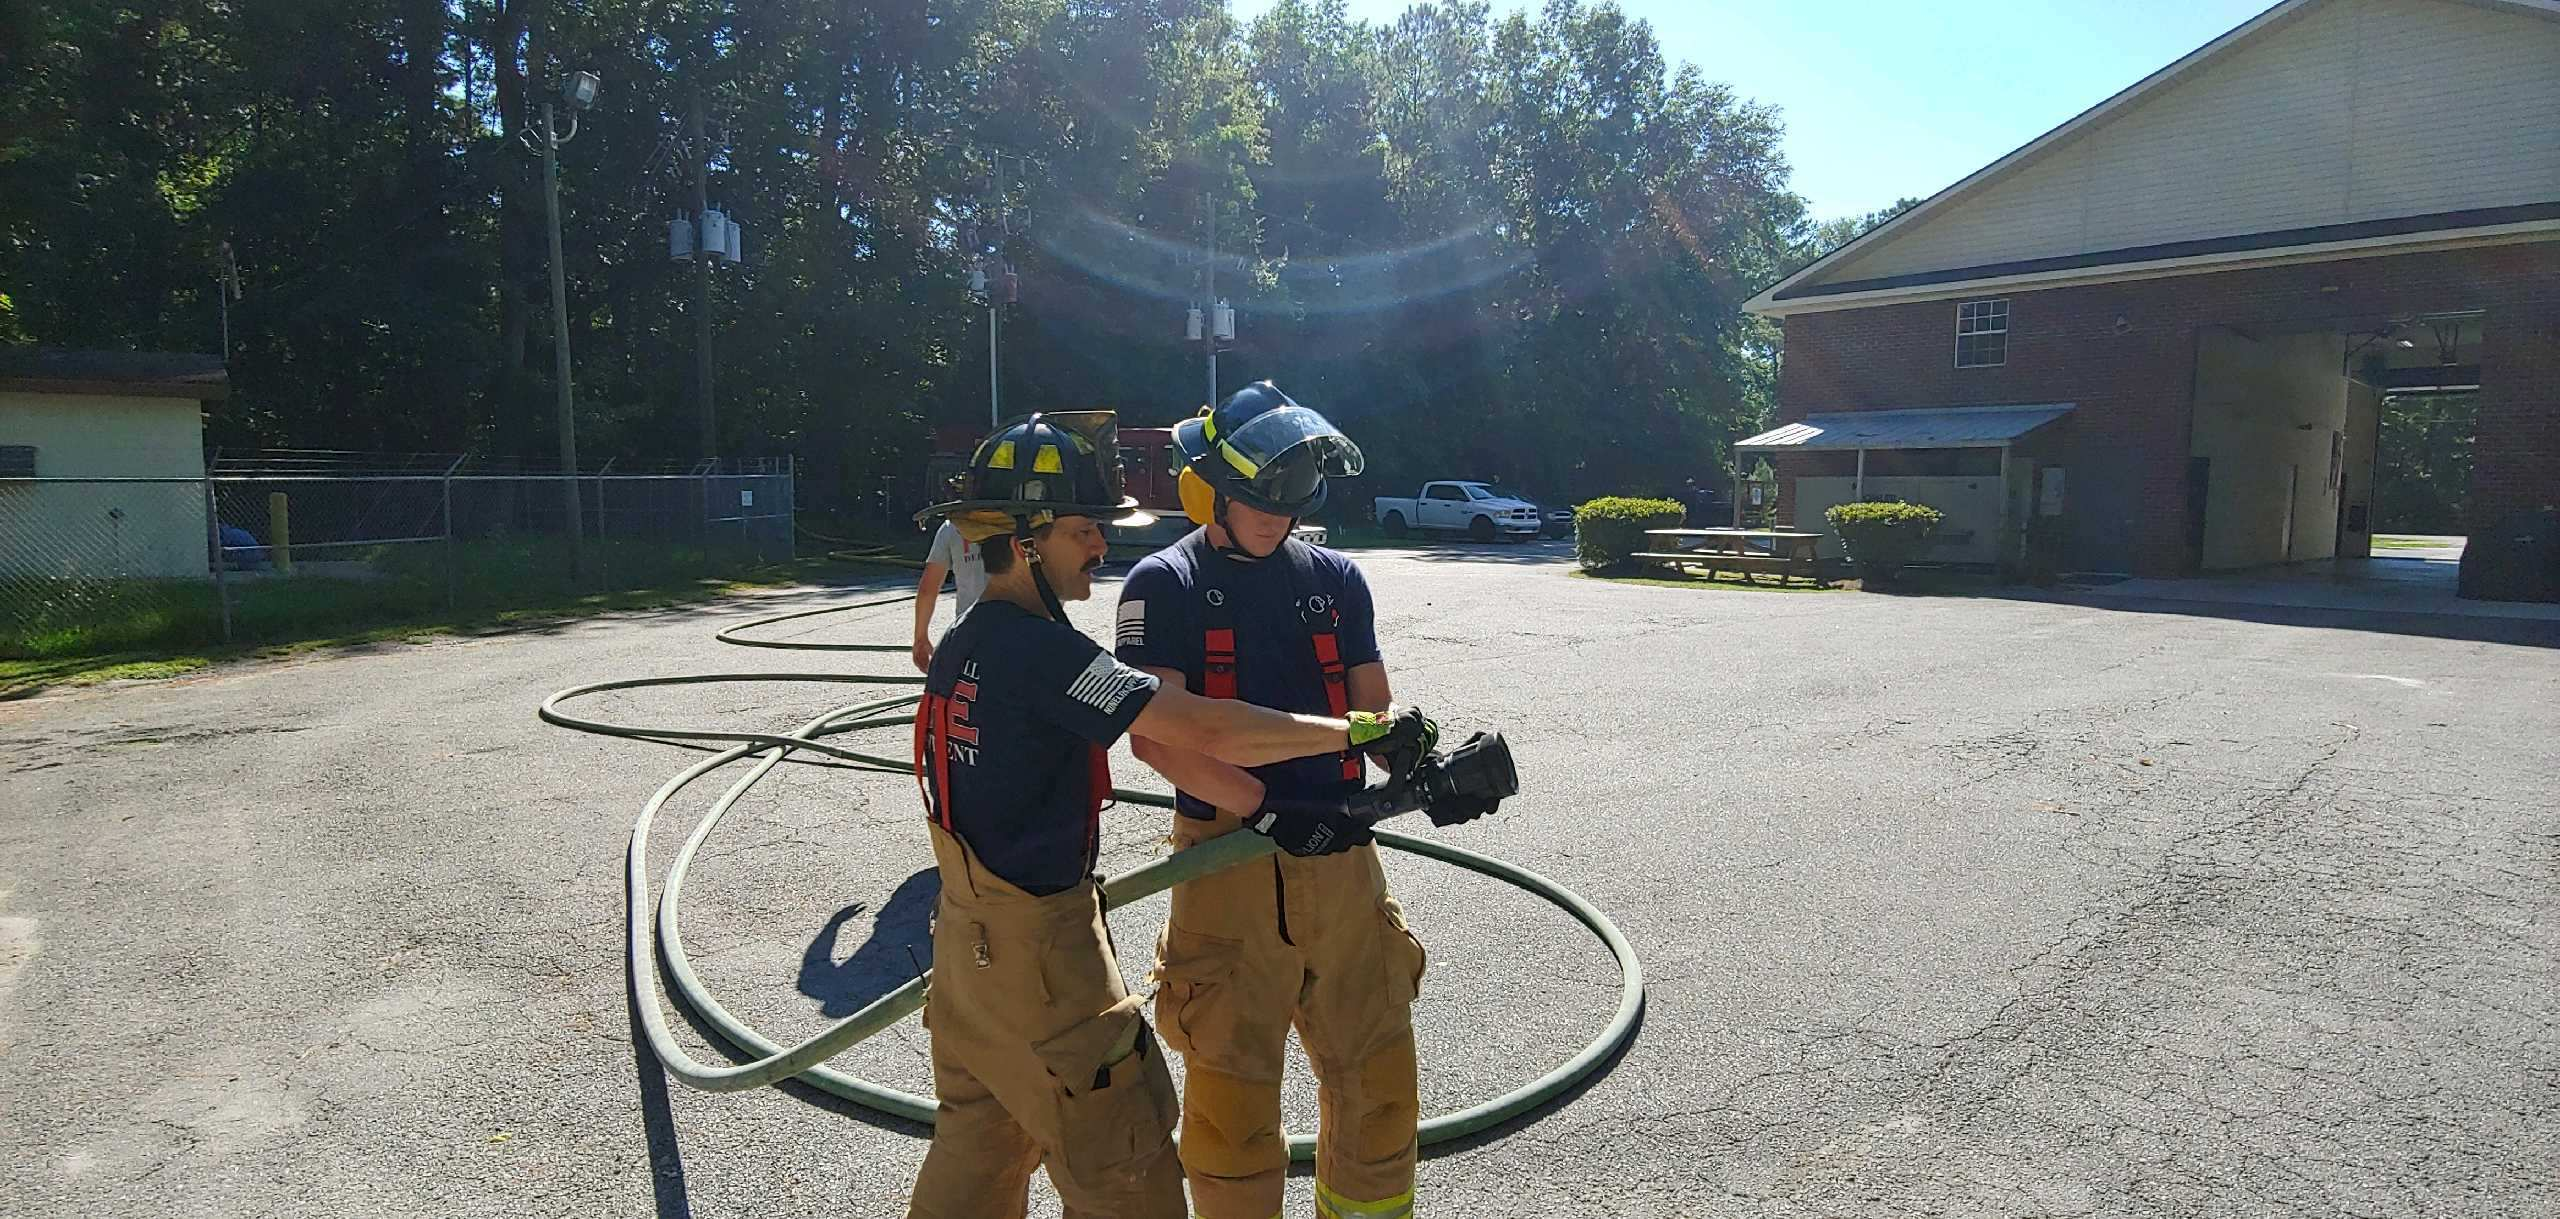 Two firefighters looking at a hose